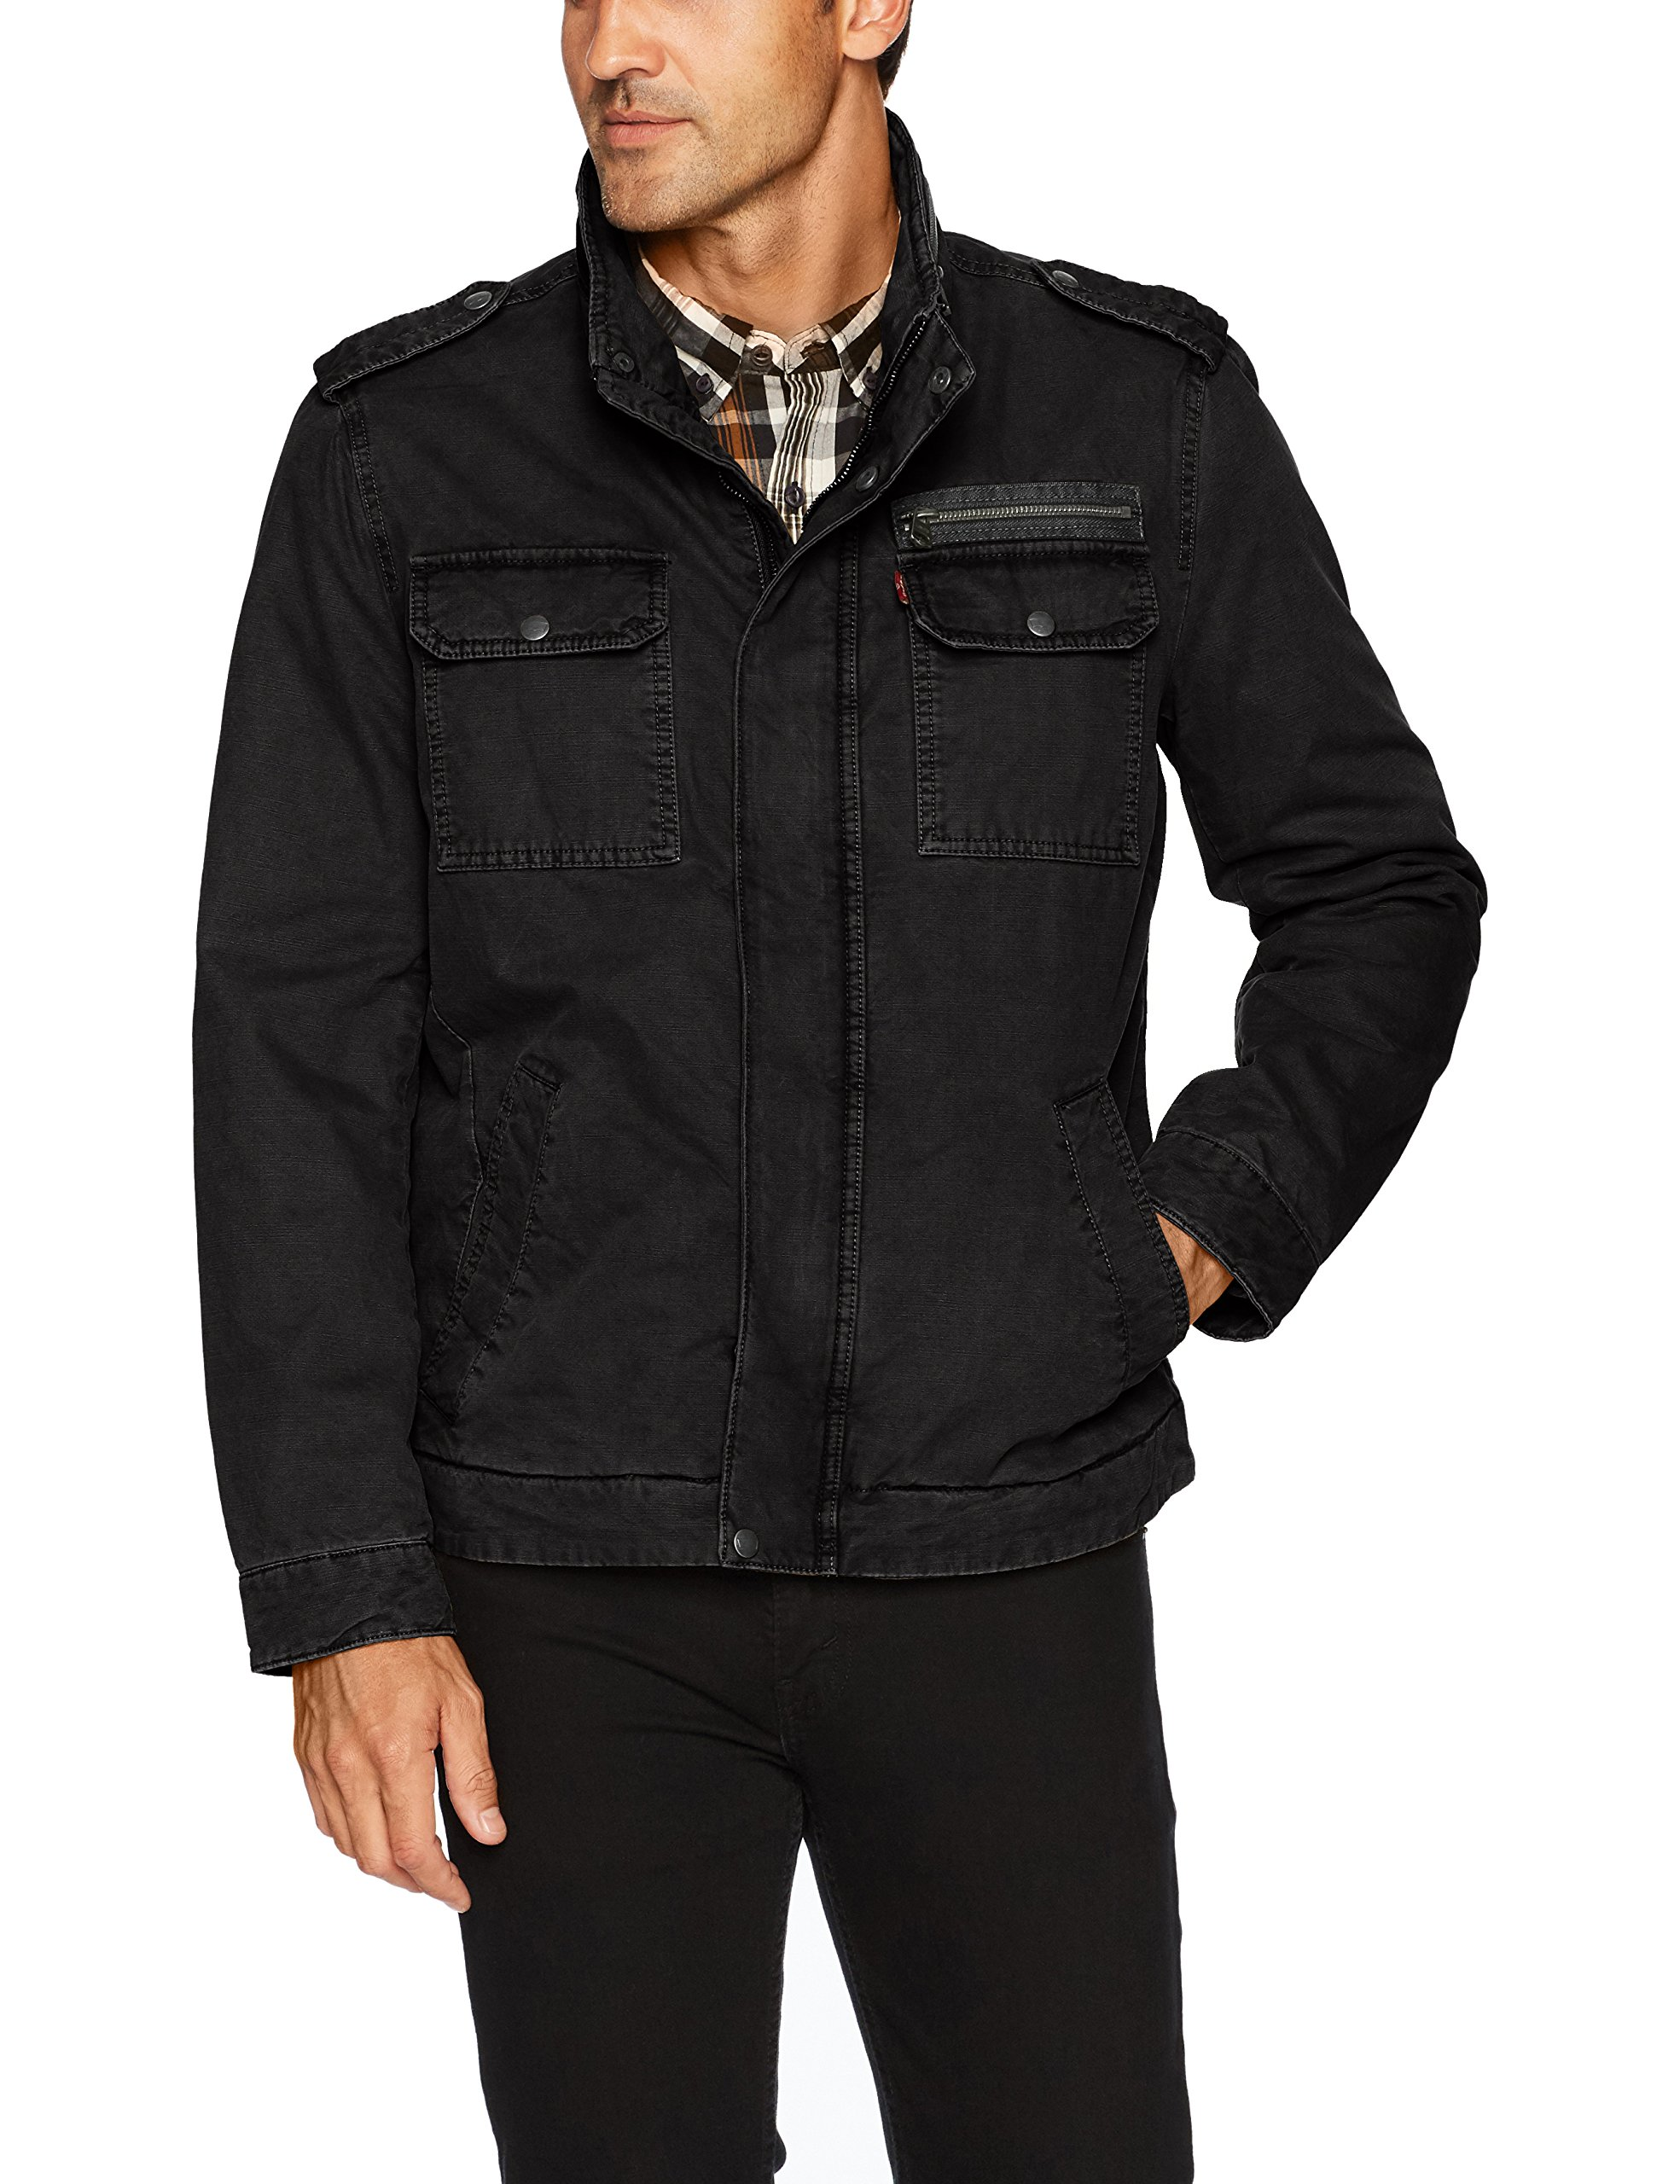 Levi's Men's Washed Cotton Two Pocket Military Jacket, Black, Small